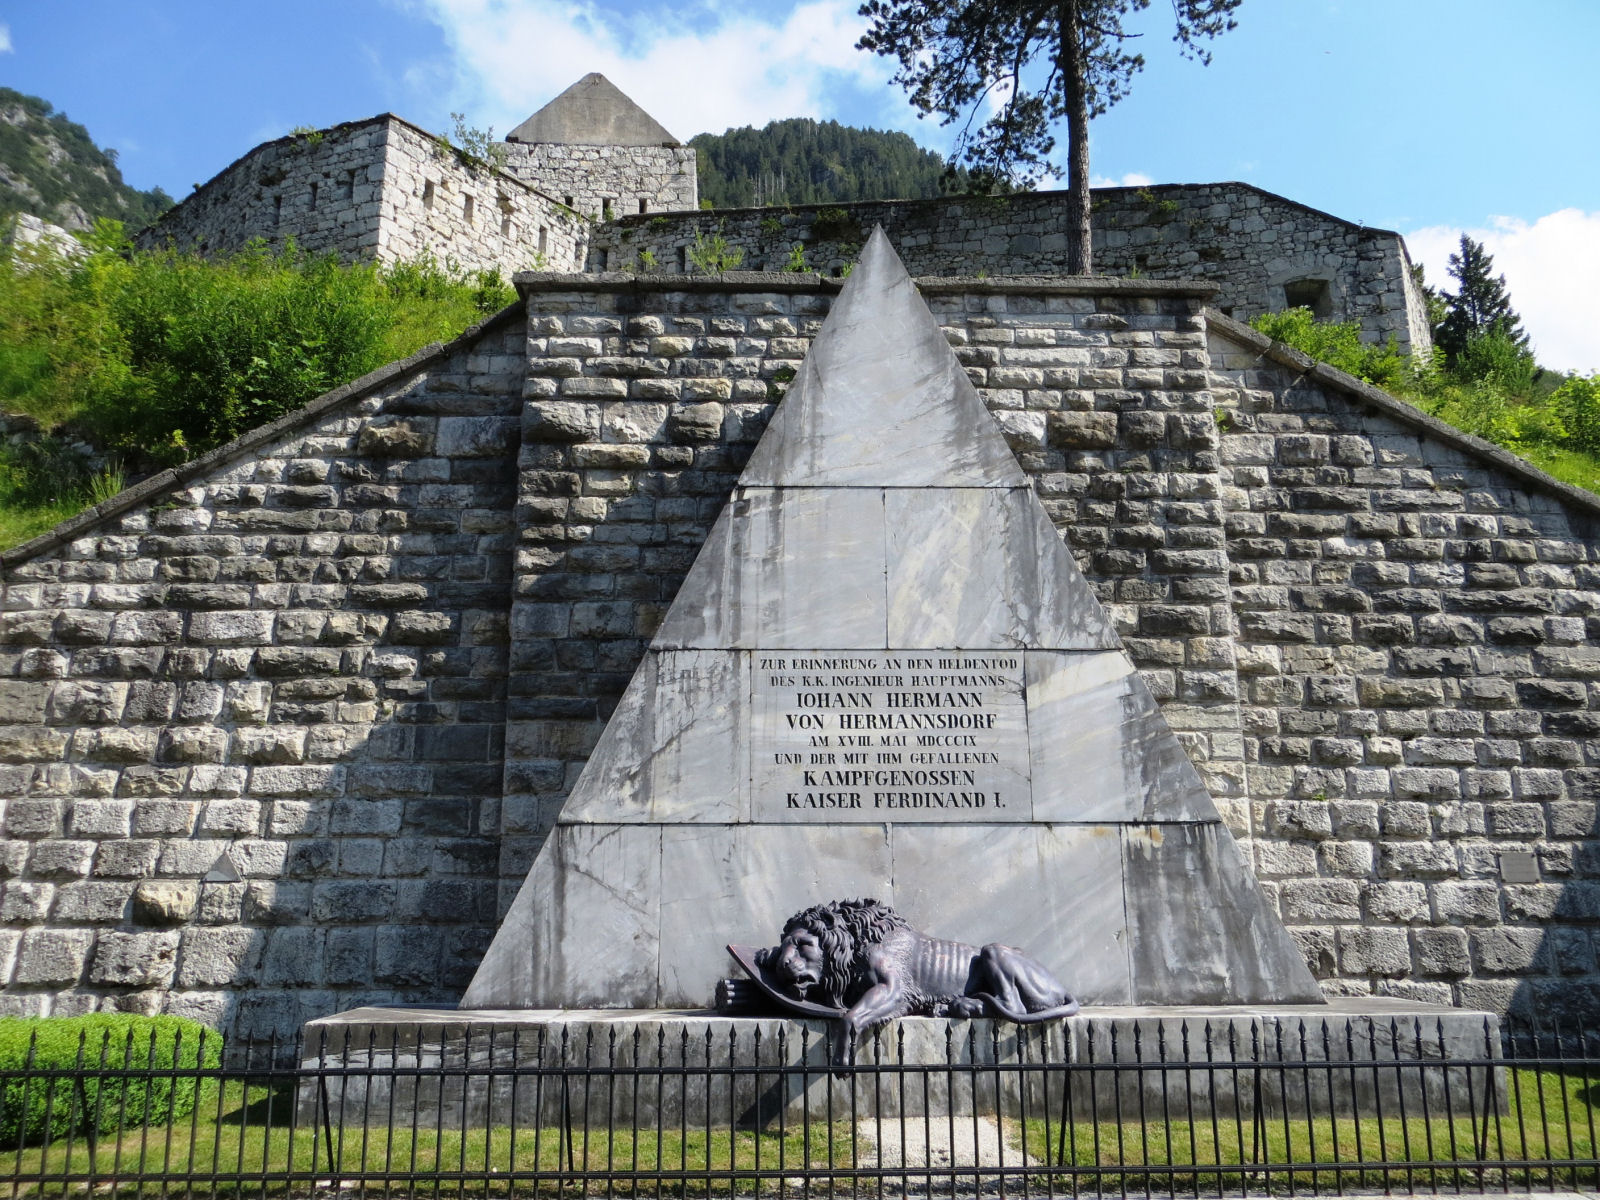 Along the road to Predel Pass stands a stone pyramid with a bronze statue of dying lion